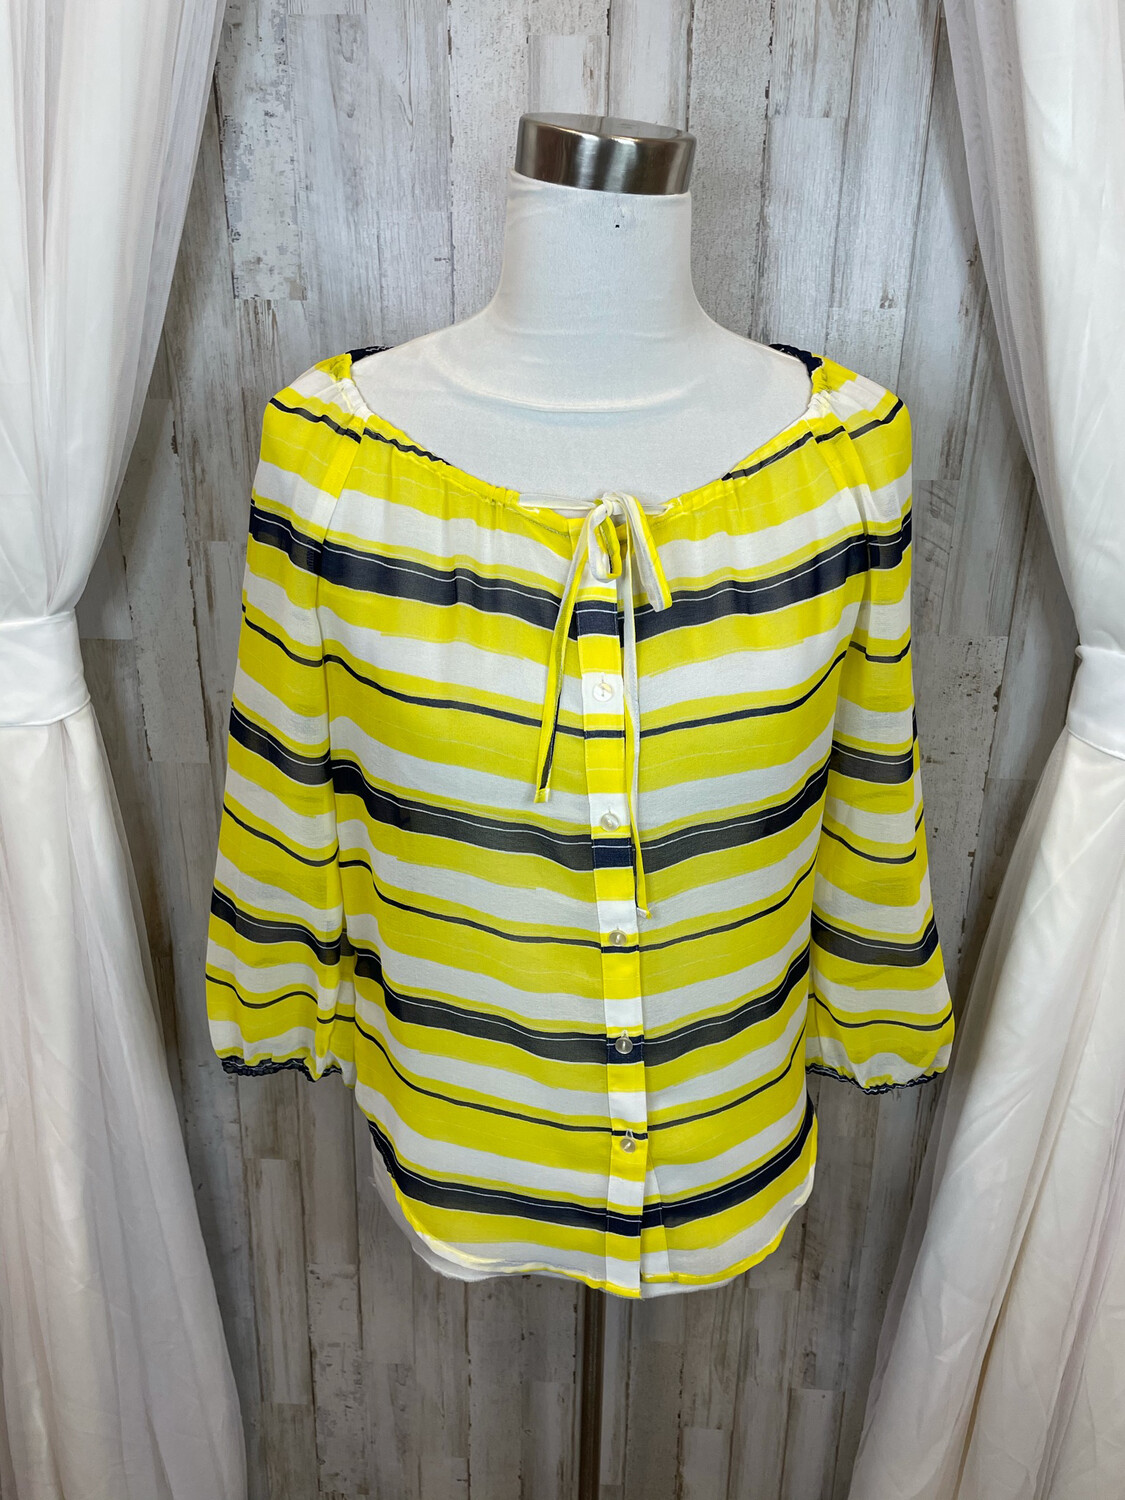 Ann Taylor Sheer Yellow & Navy Striped Top - XS